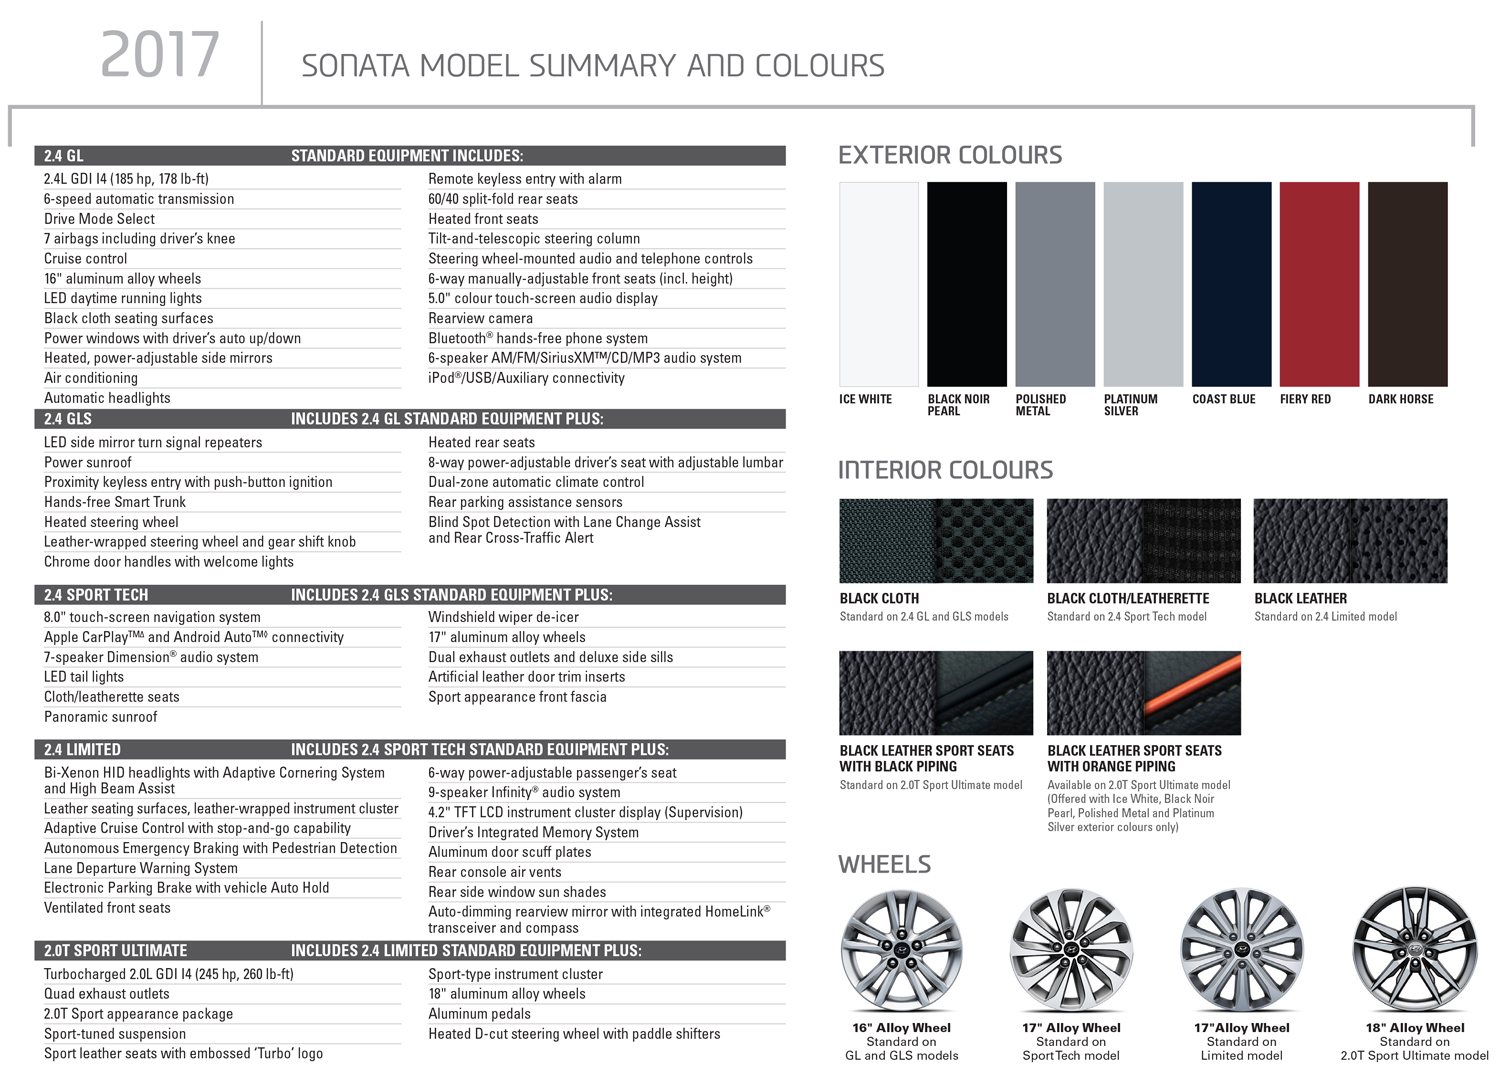 Hyundai Sonata model summary and colours in London